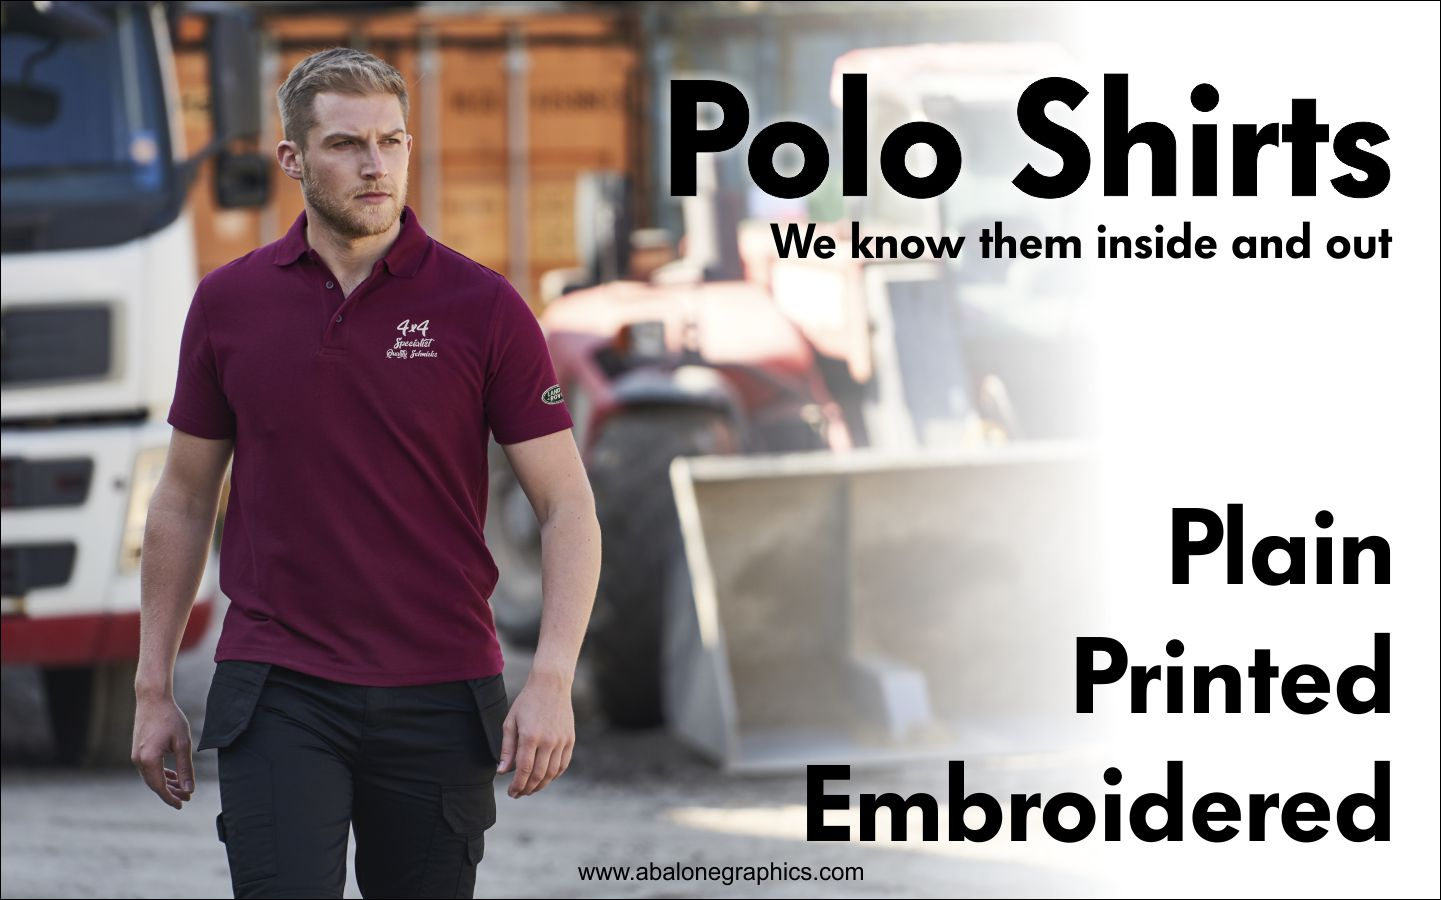 Printed Embroidered Polo Shirts